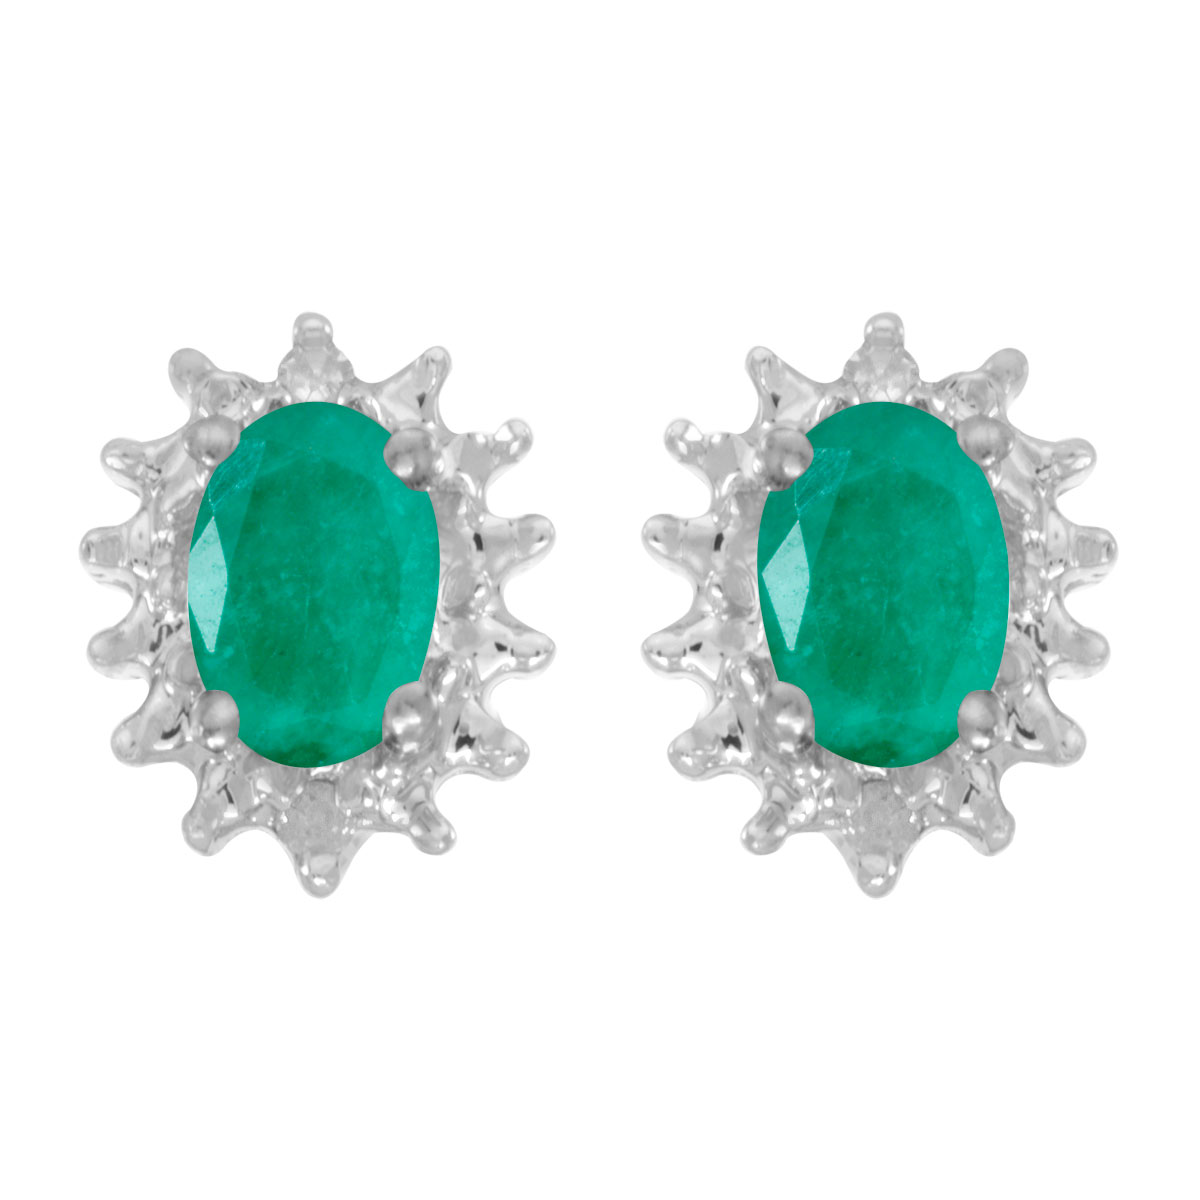 These 14k white gold oval emerald and diamond earrings feature 6x4 mm genuine natural emeralds wi...